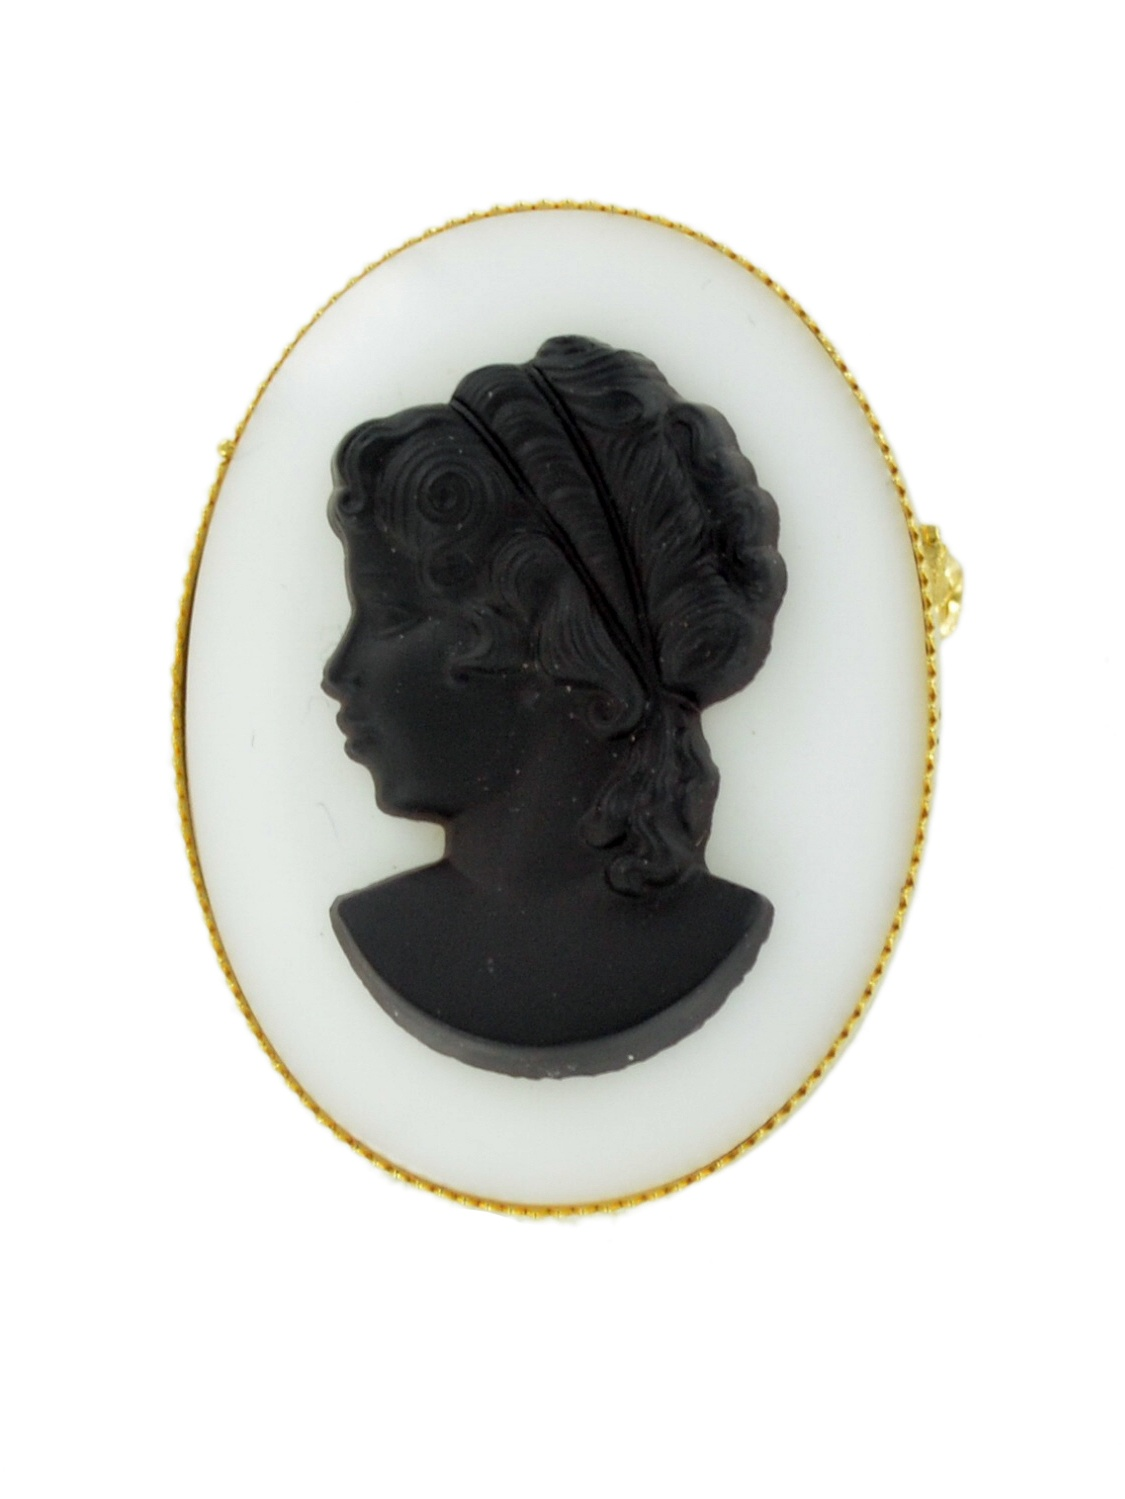 Gold Tone Black White Glass Oval Cameo Pin Brooch or Pendant by